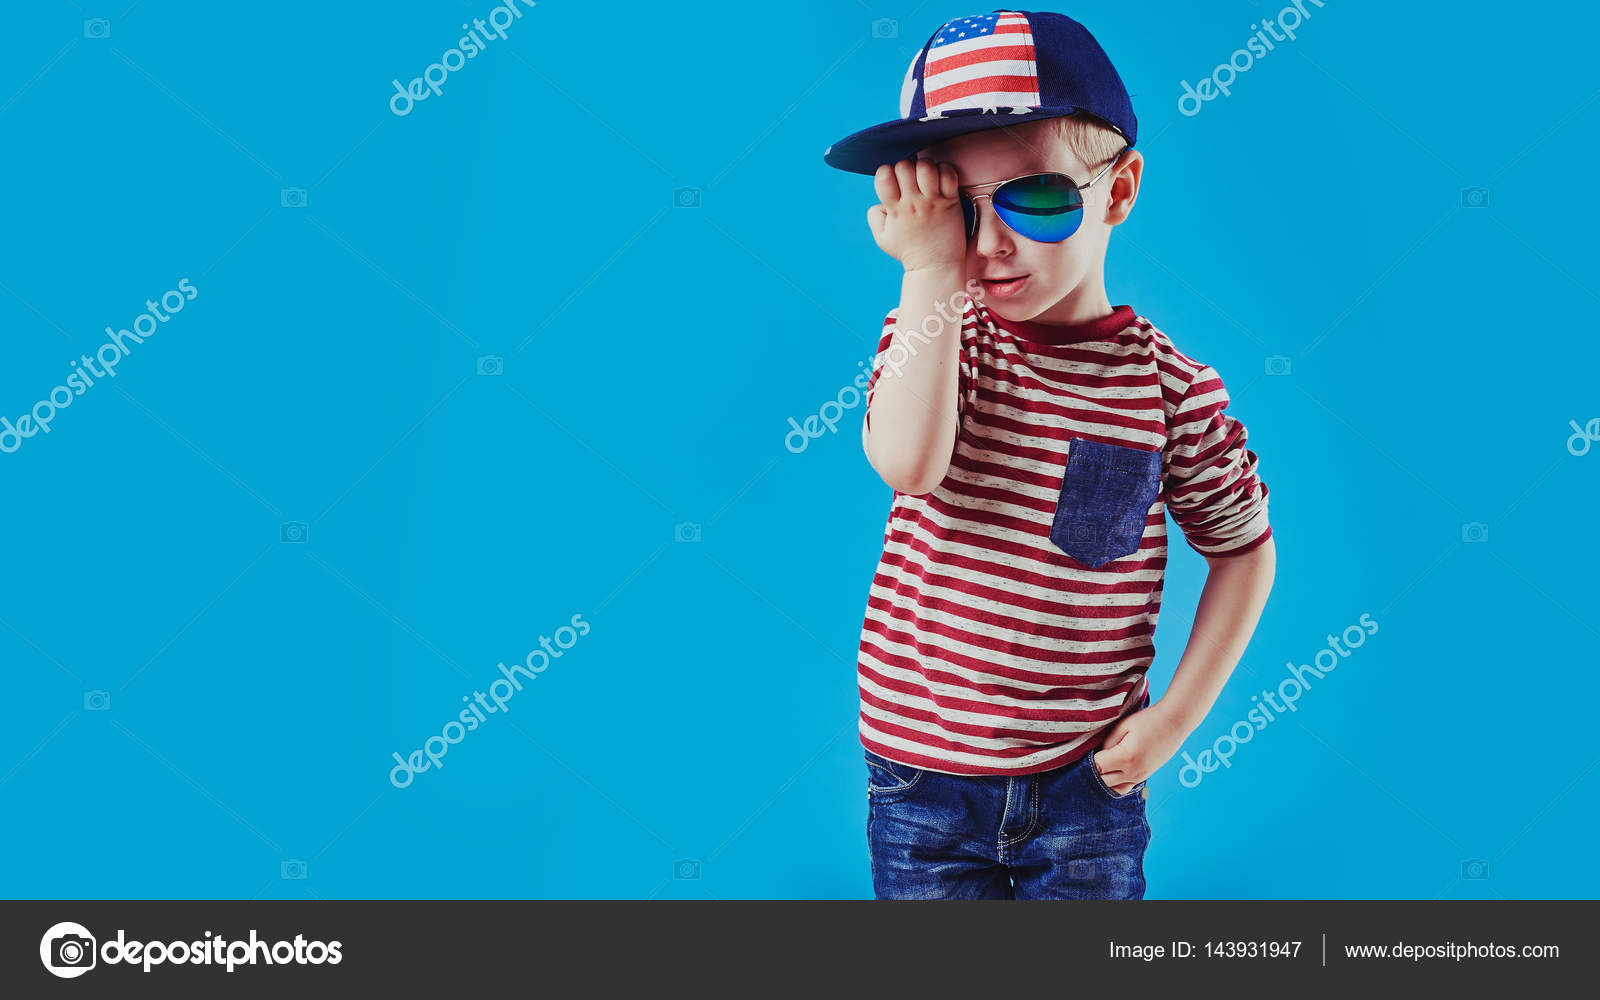 f0eff84a0 Cute little boy in elegant clothes and sunglasses. Kids fashion.– stock  image